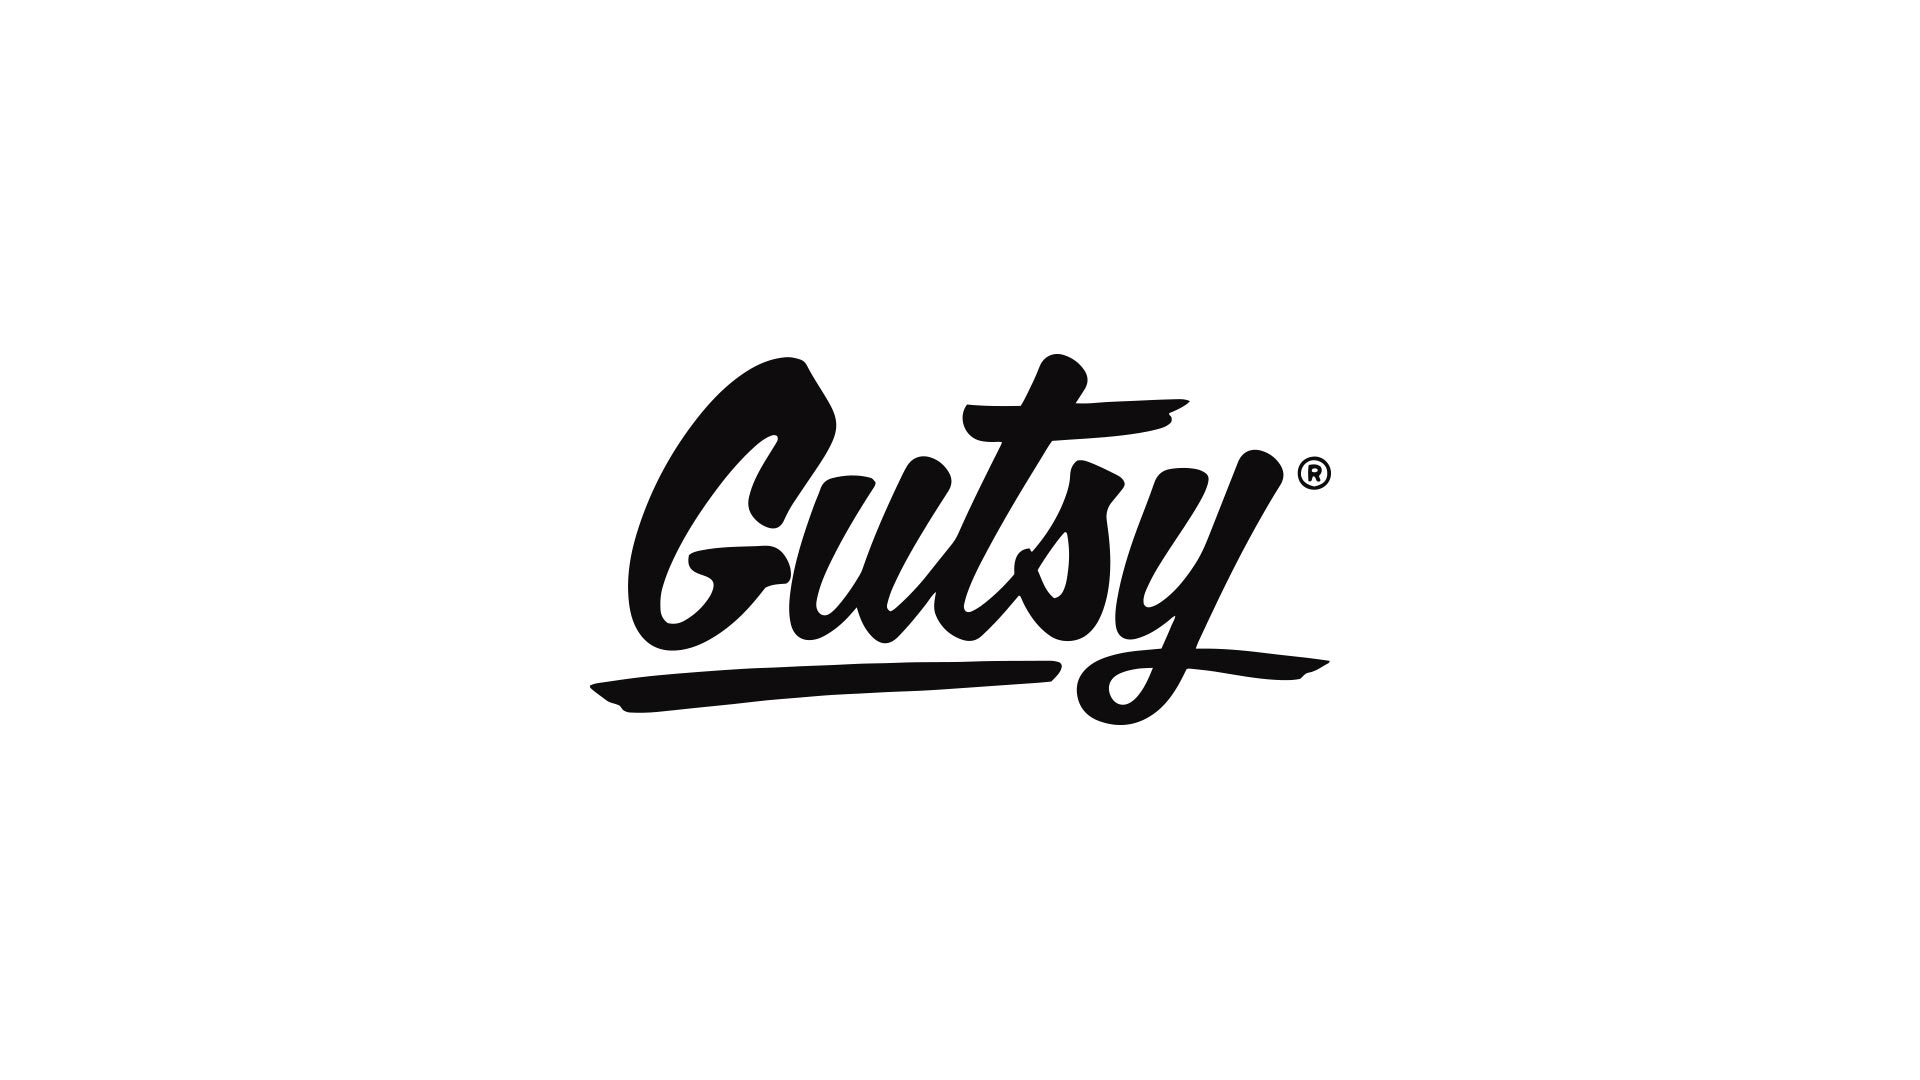 Edit.Set.Go! - Gutsy